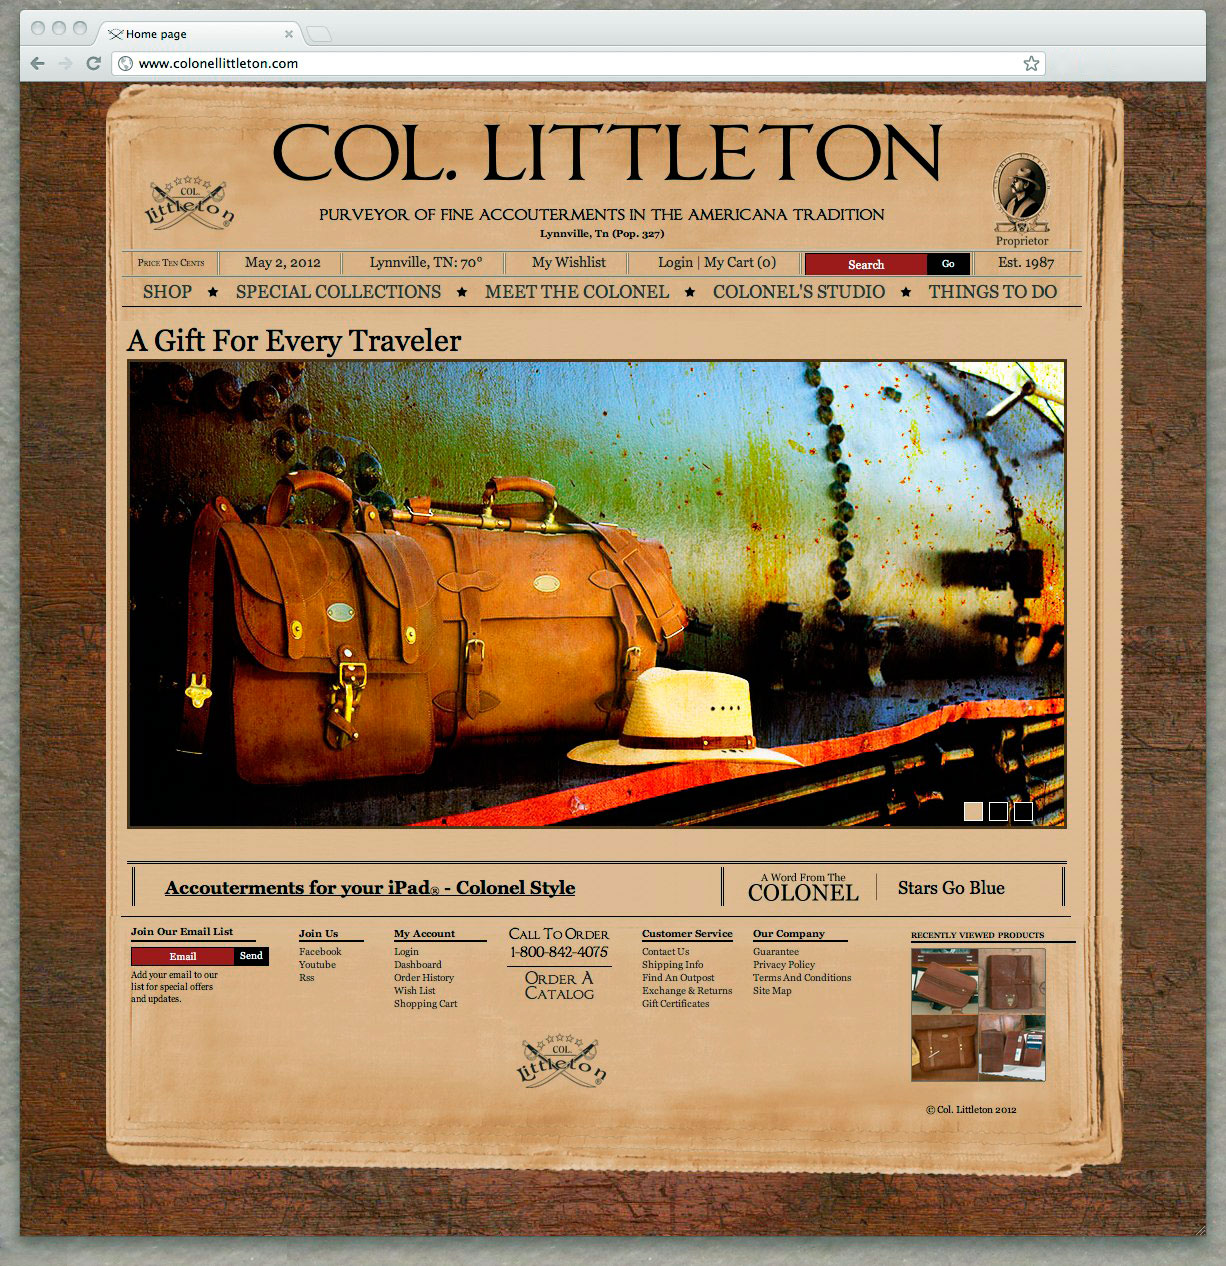 Col. Littleton Homepage